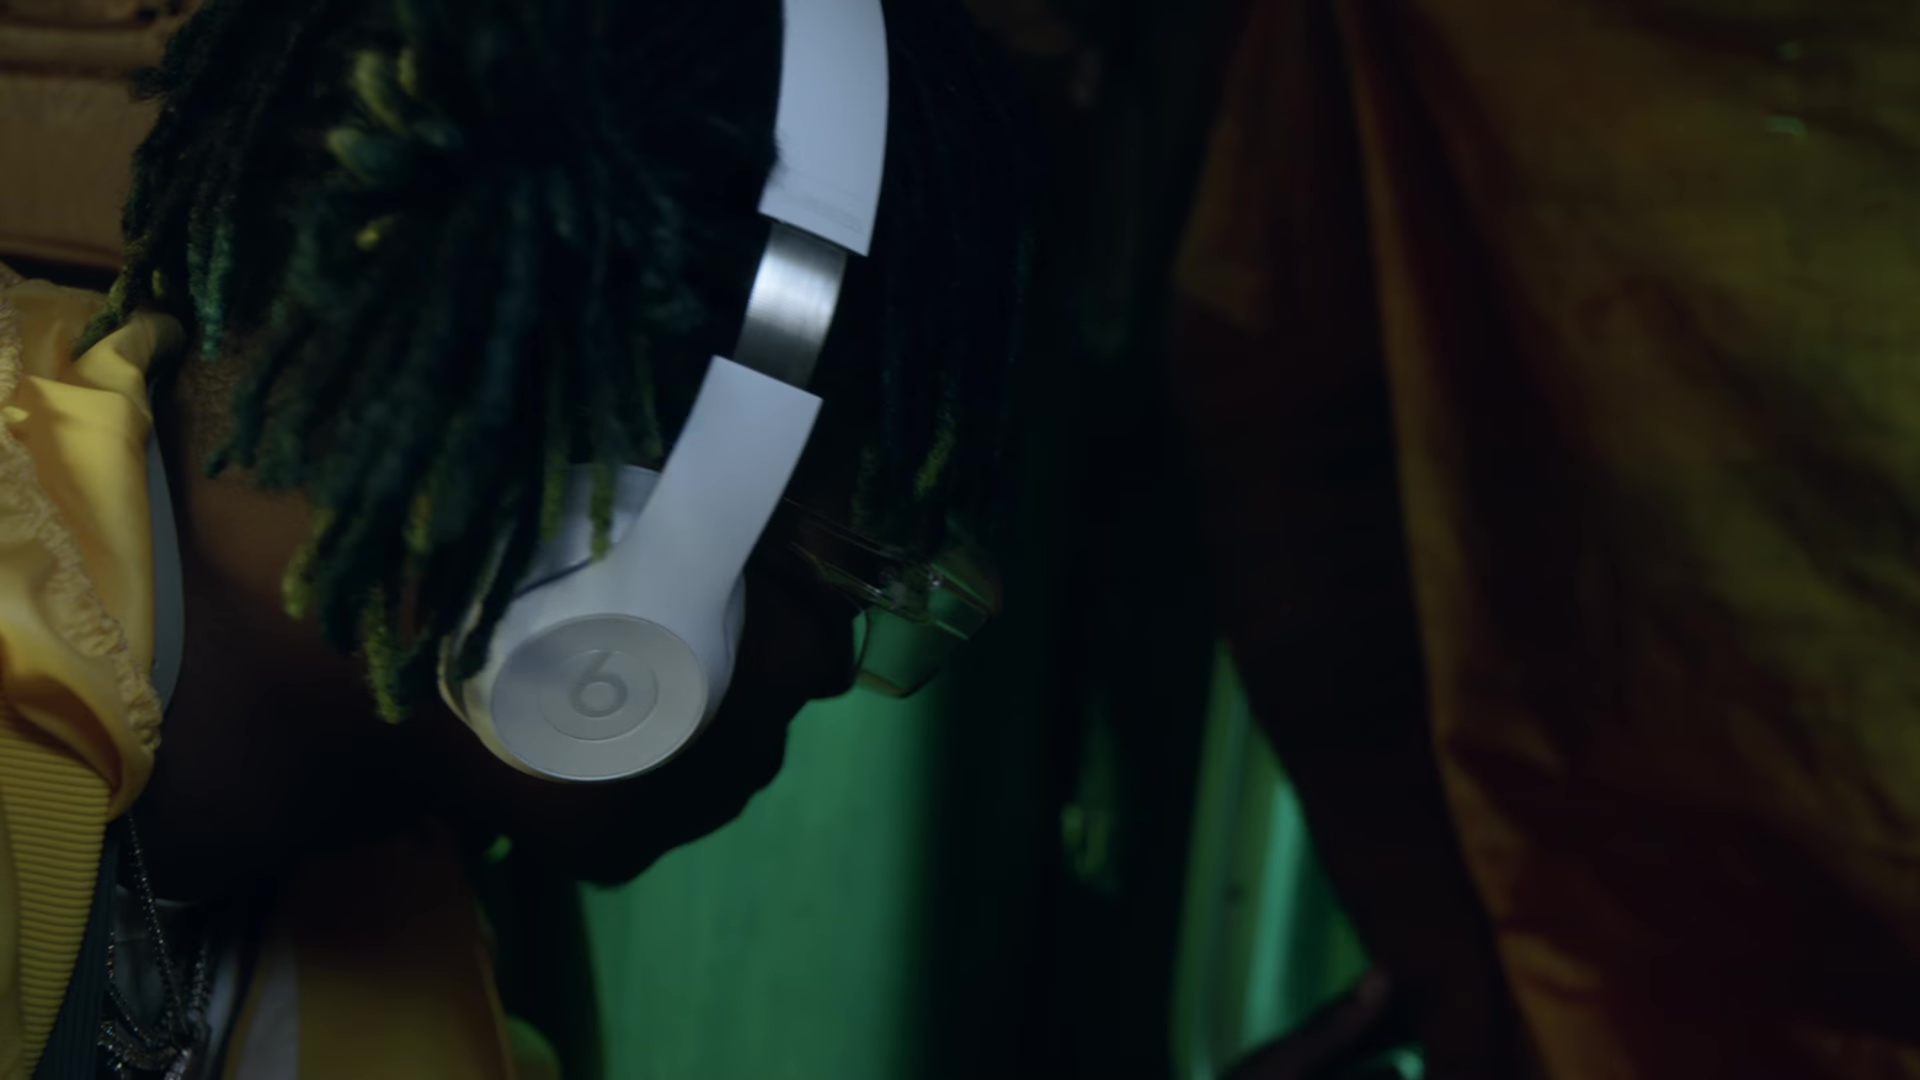 Beats White Wireless Headphones Used By Rich The Kid In Plug Walk 2018